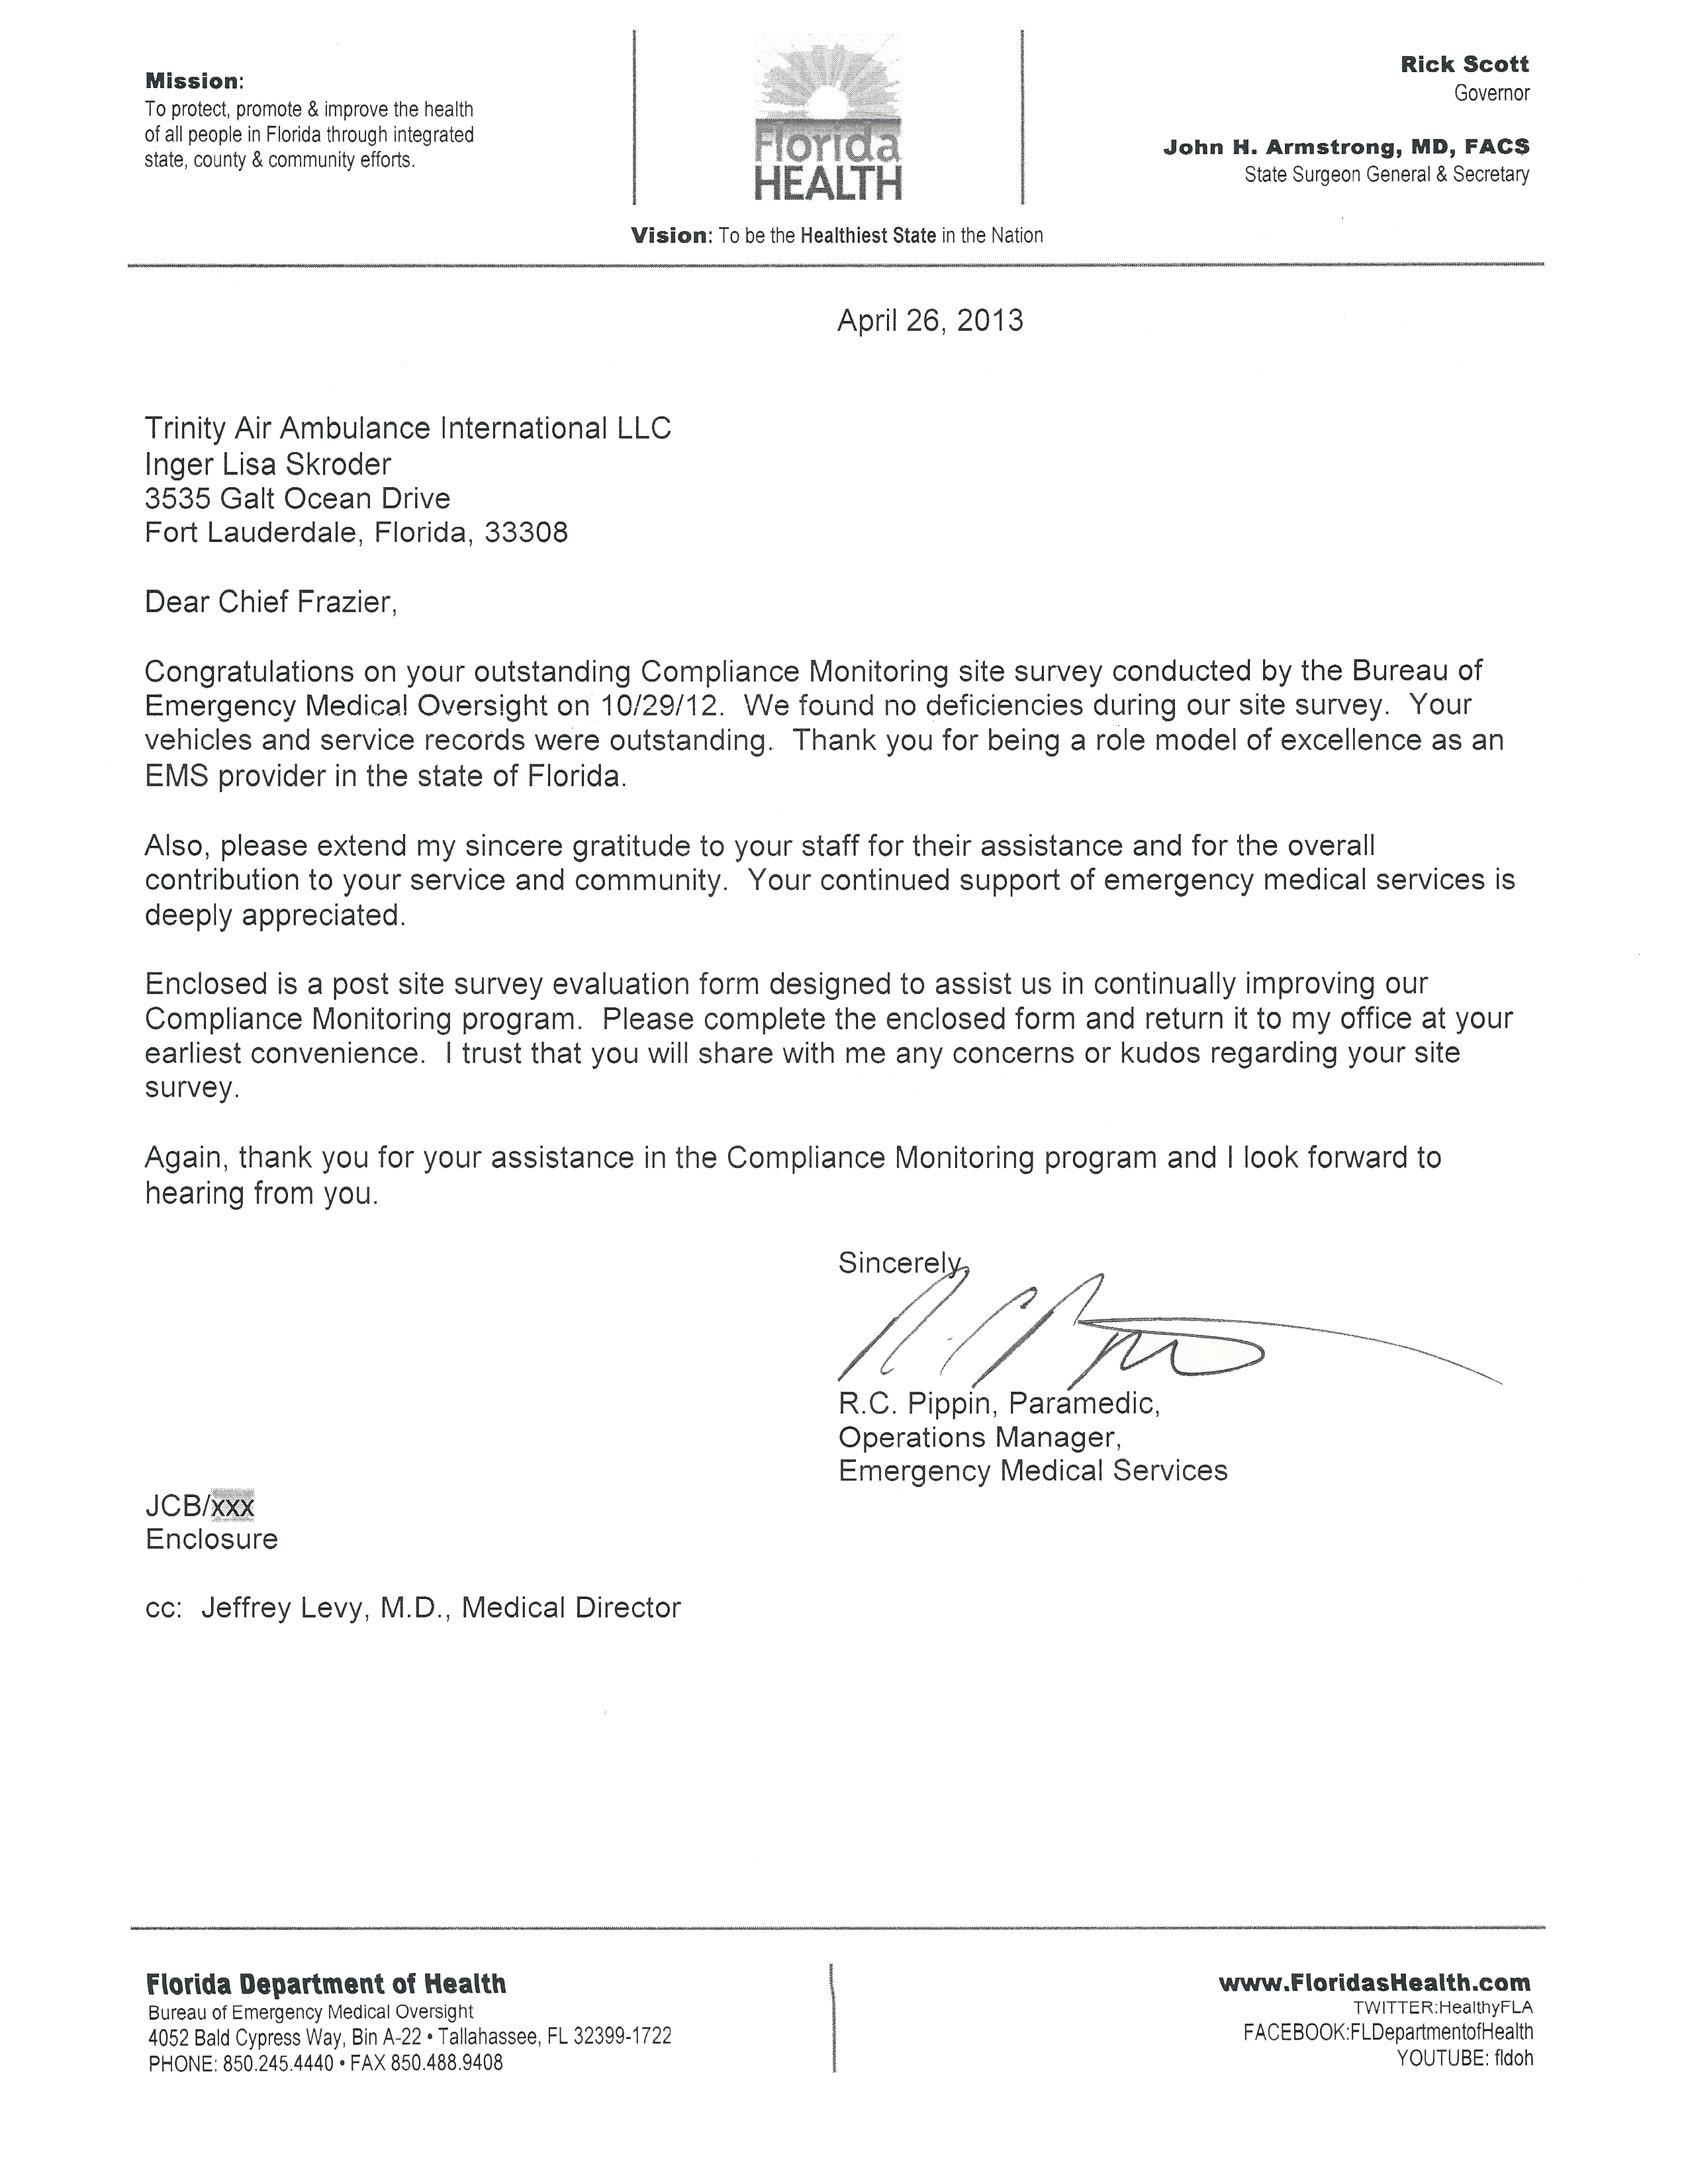 Trinity Air Ambulance International - Outstanding Compliance Letter